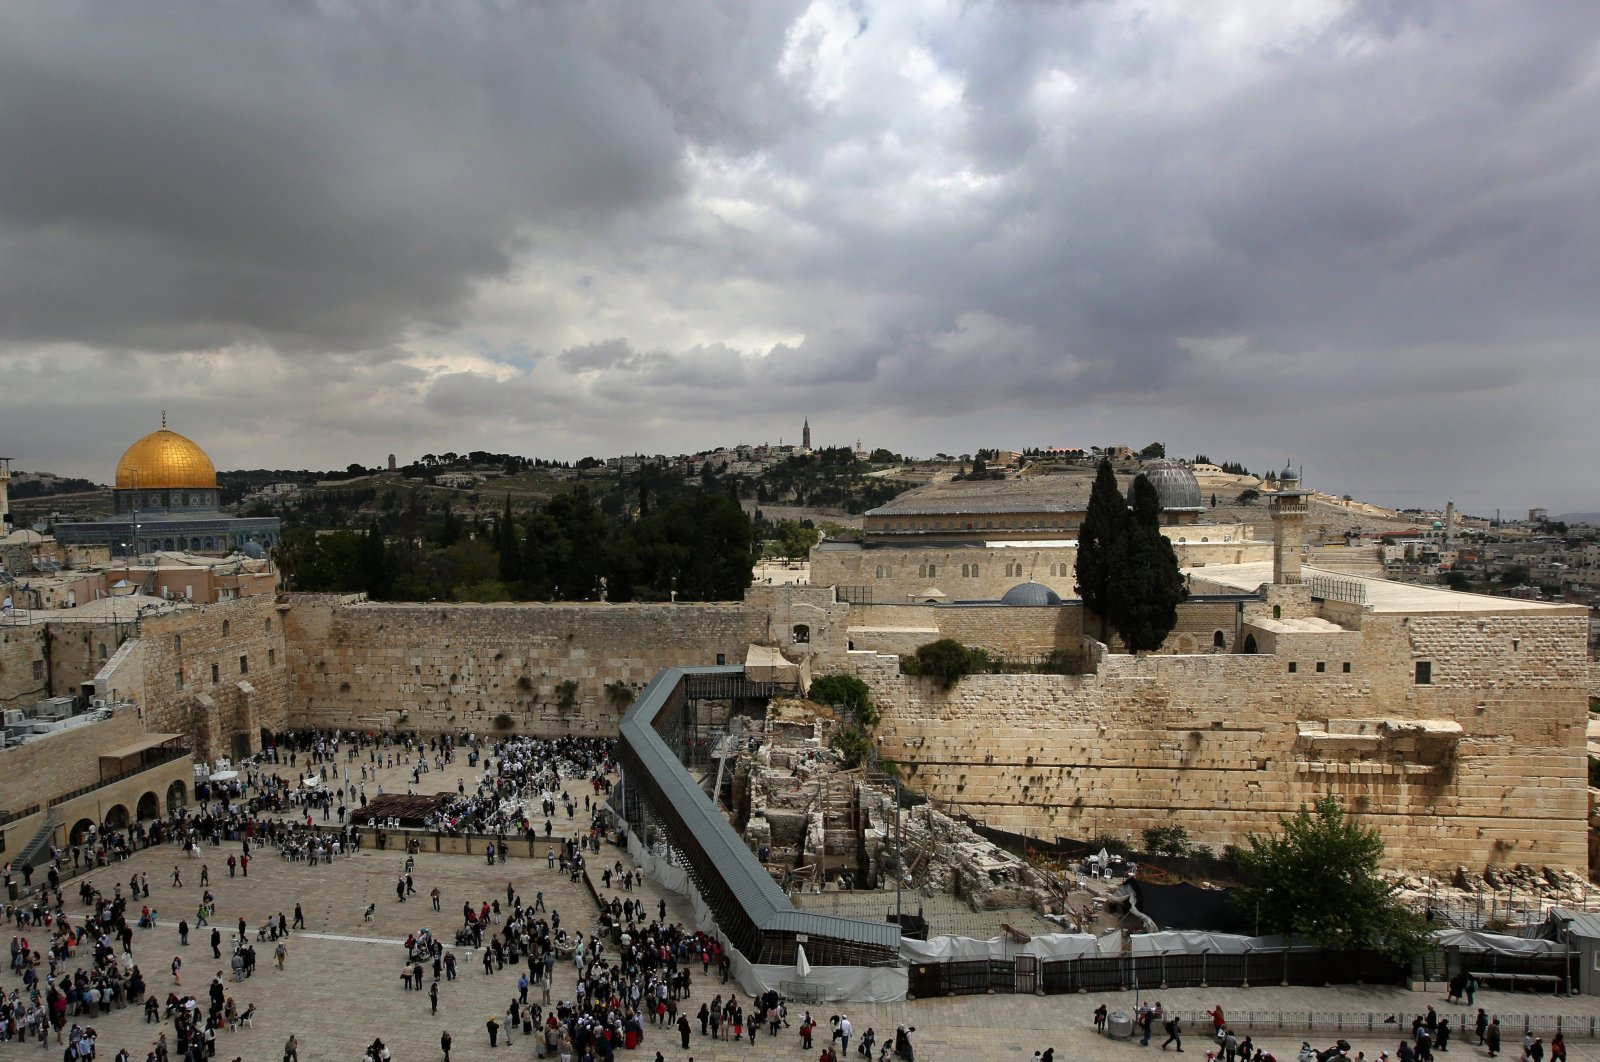 A photograph released on April 24, 2013, shows a view of Jerusalem's Old City including the Western Wall (C-L), the golden Dome of the Rock and al-Aqsa Mosque (R), both on the Temple Mount on a cloudy day on 18 April 2013. (EPA Photo)